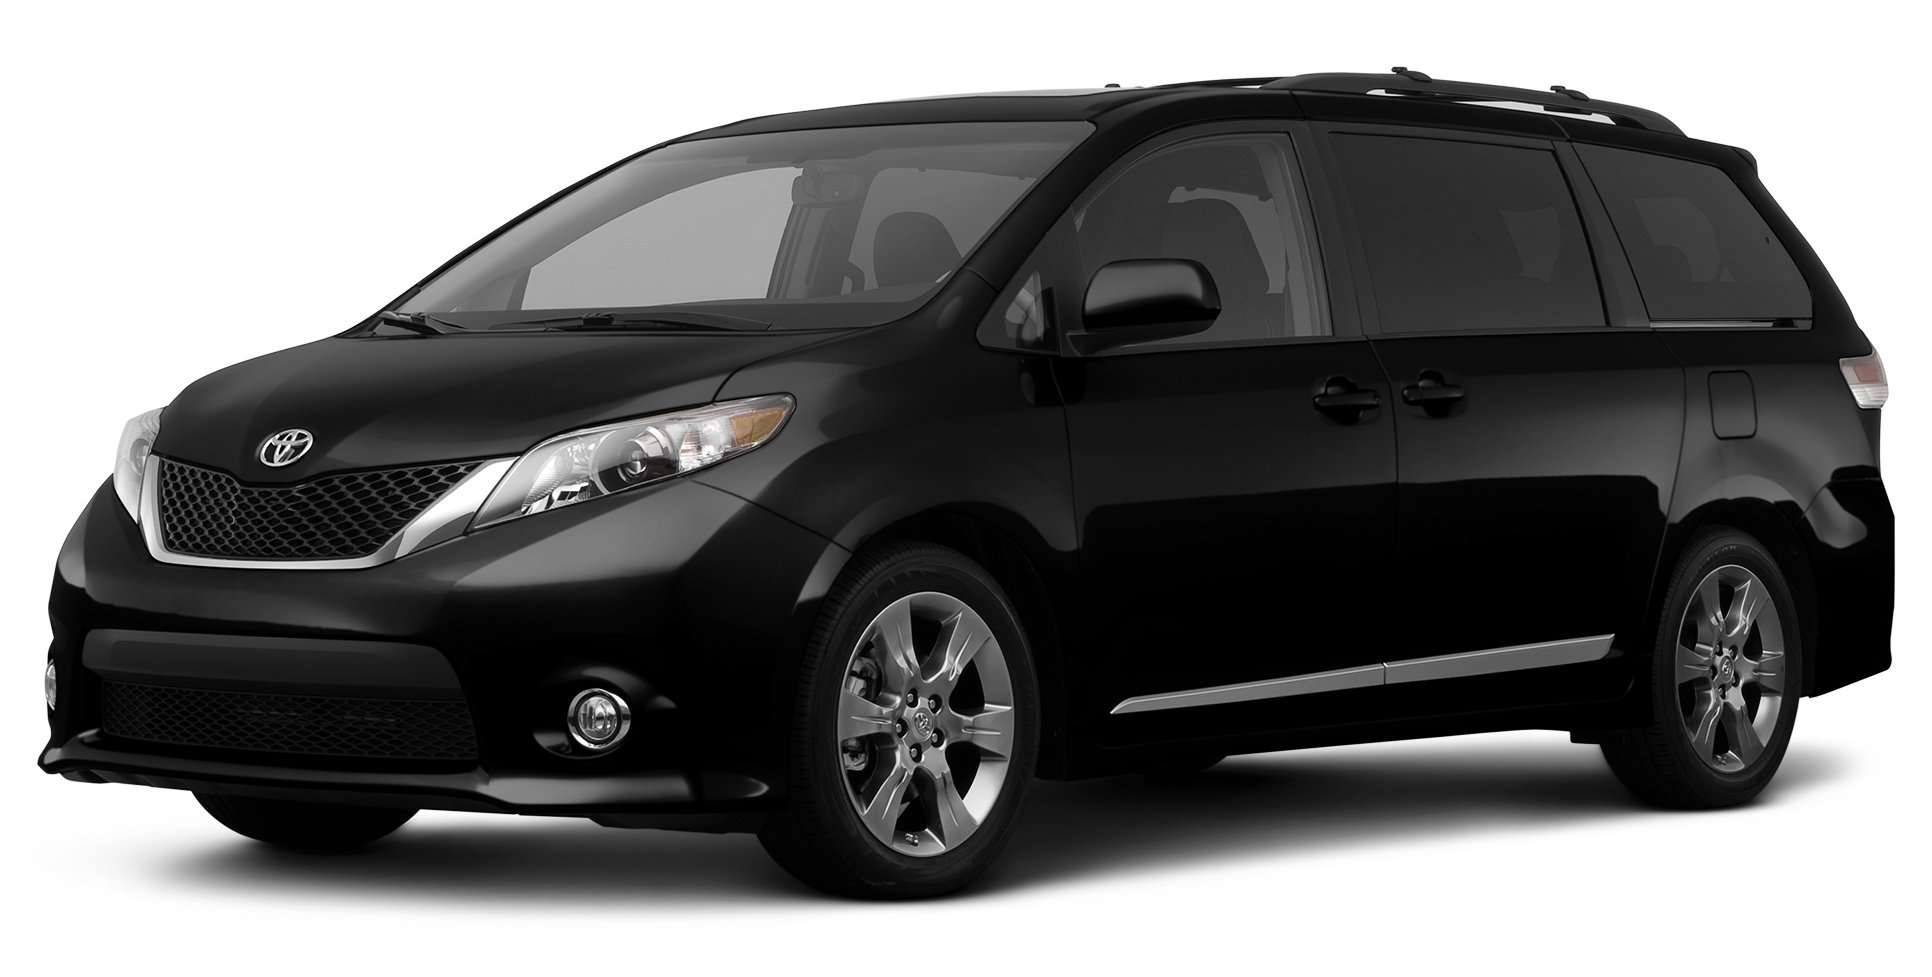 2012 toyota sienna reviews images and specs vehicles. Black Bedroom Furniture Sets. Home Design Ideas